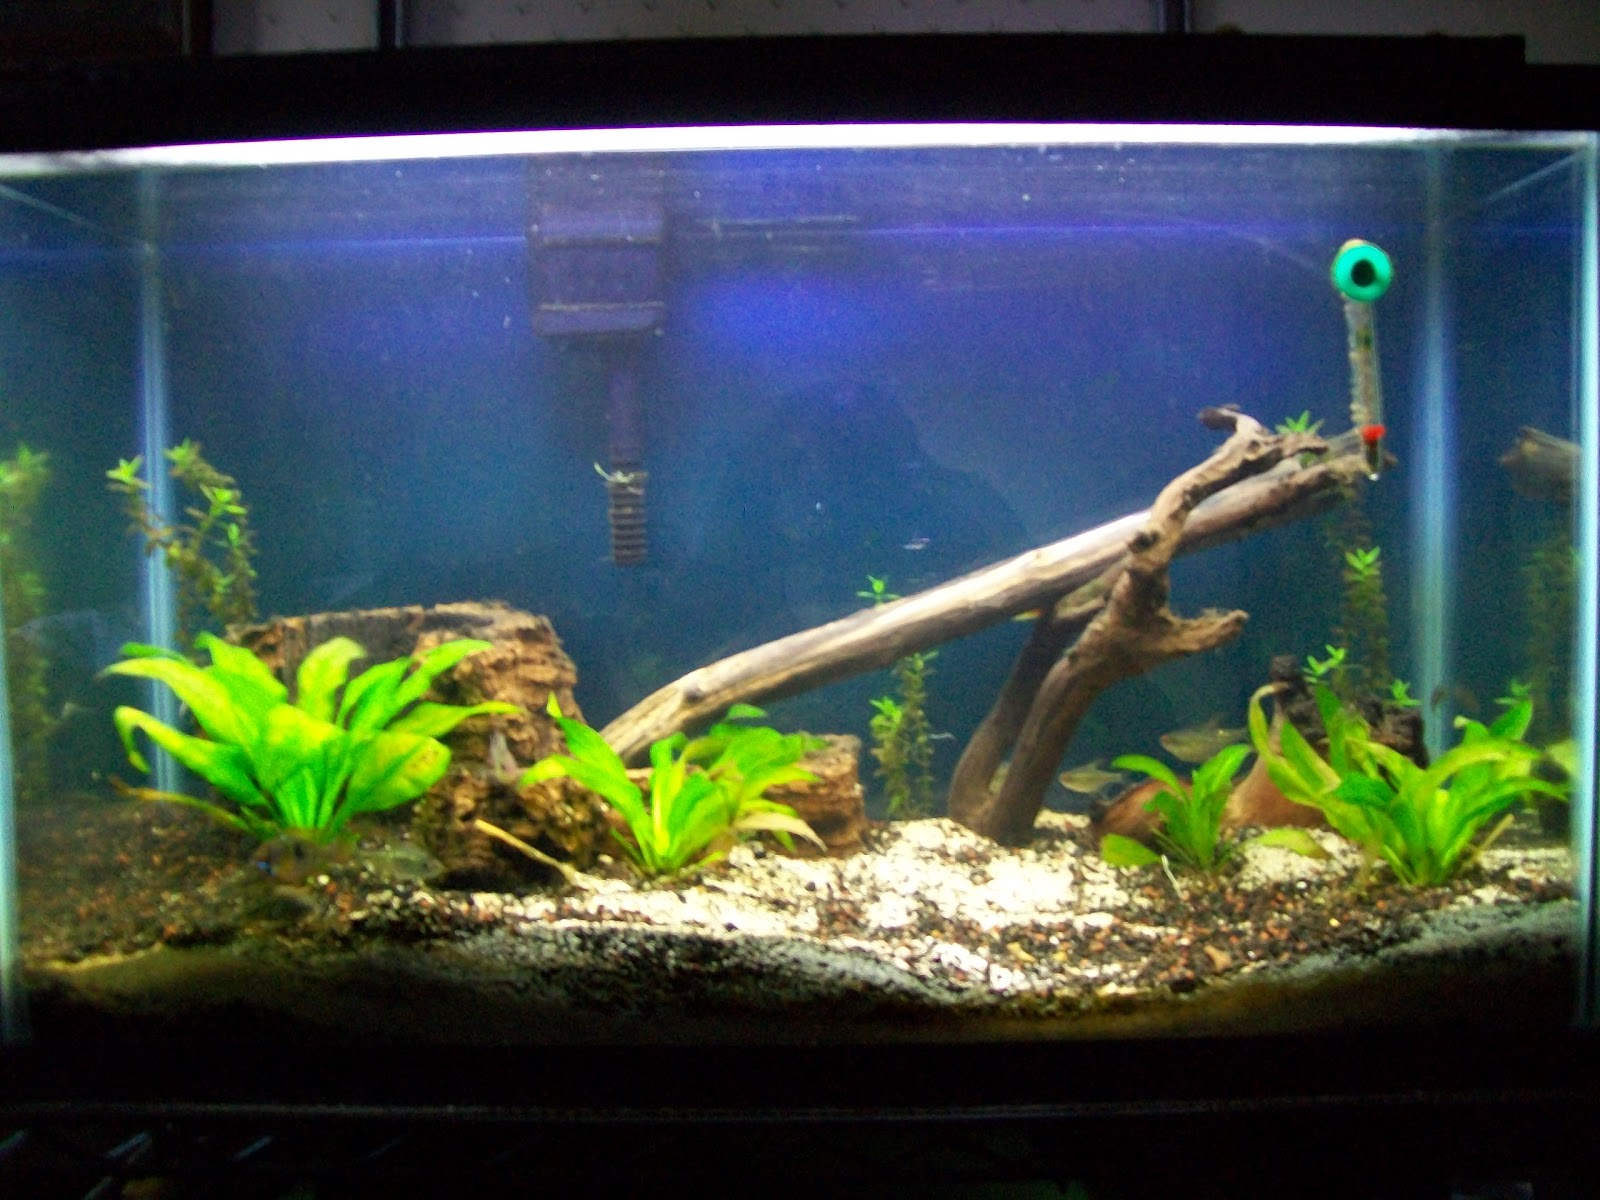 30 Gallon Native Fish Tank Tanks A 30 Gallon Tank That: thirty gallon fish tank